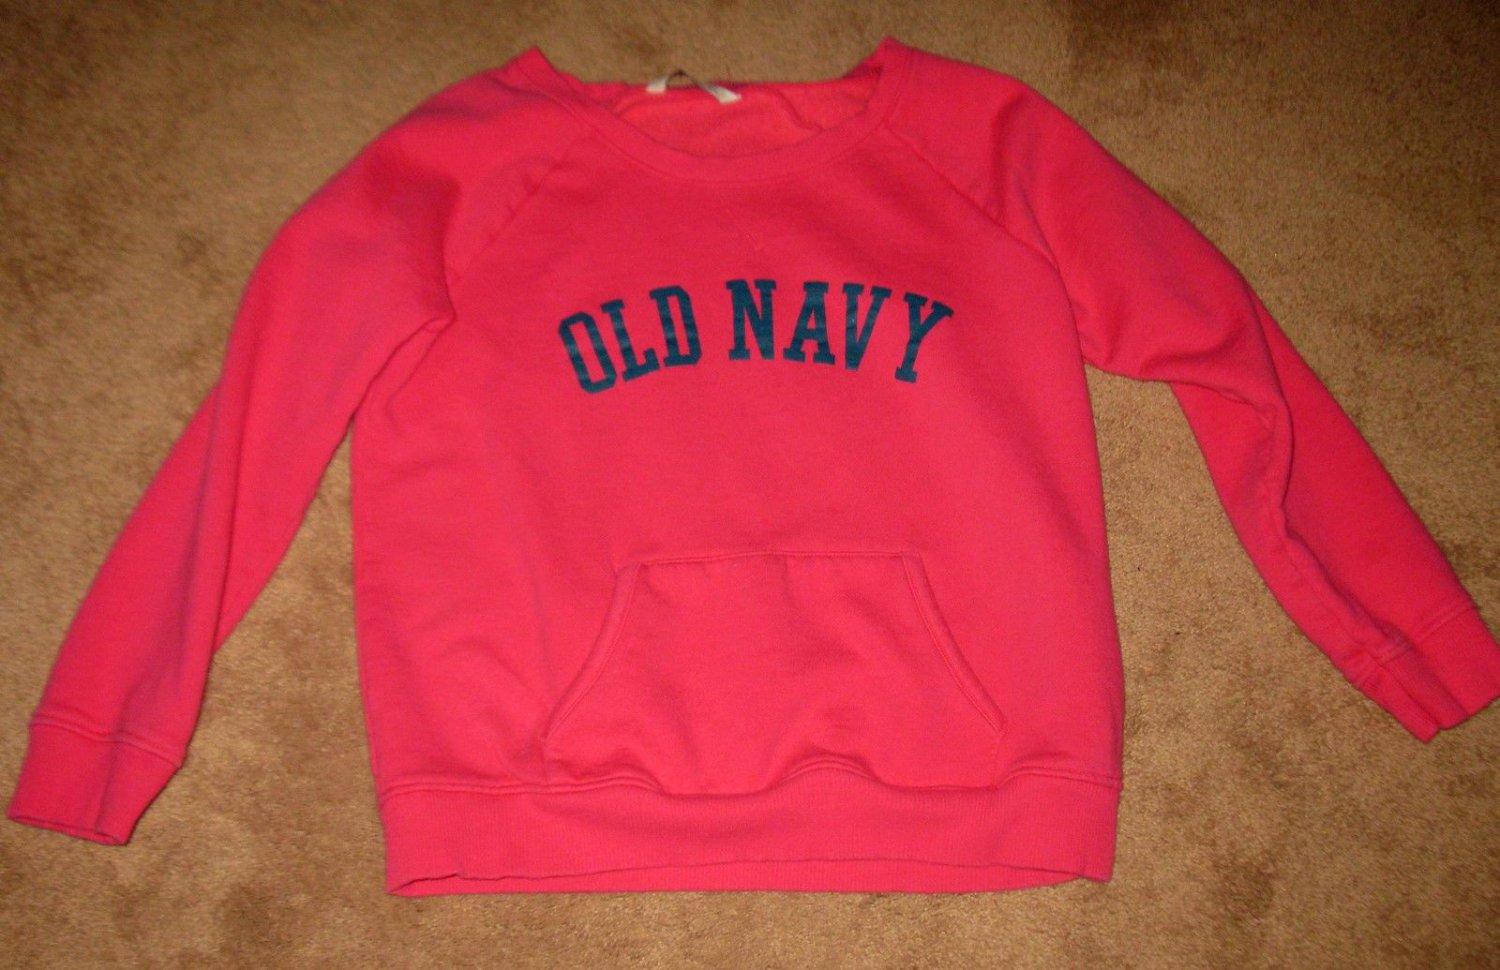 Pink Sweat Shirt Top by Old Navy Long Sleeves Top Size L Nice! #X153